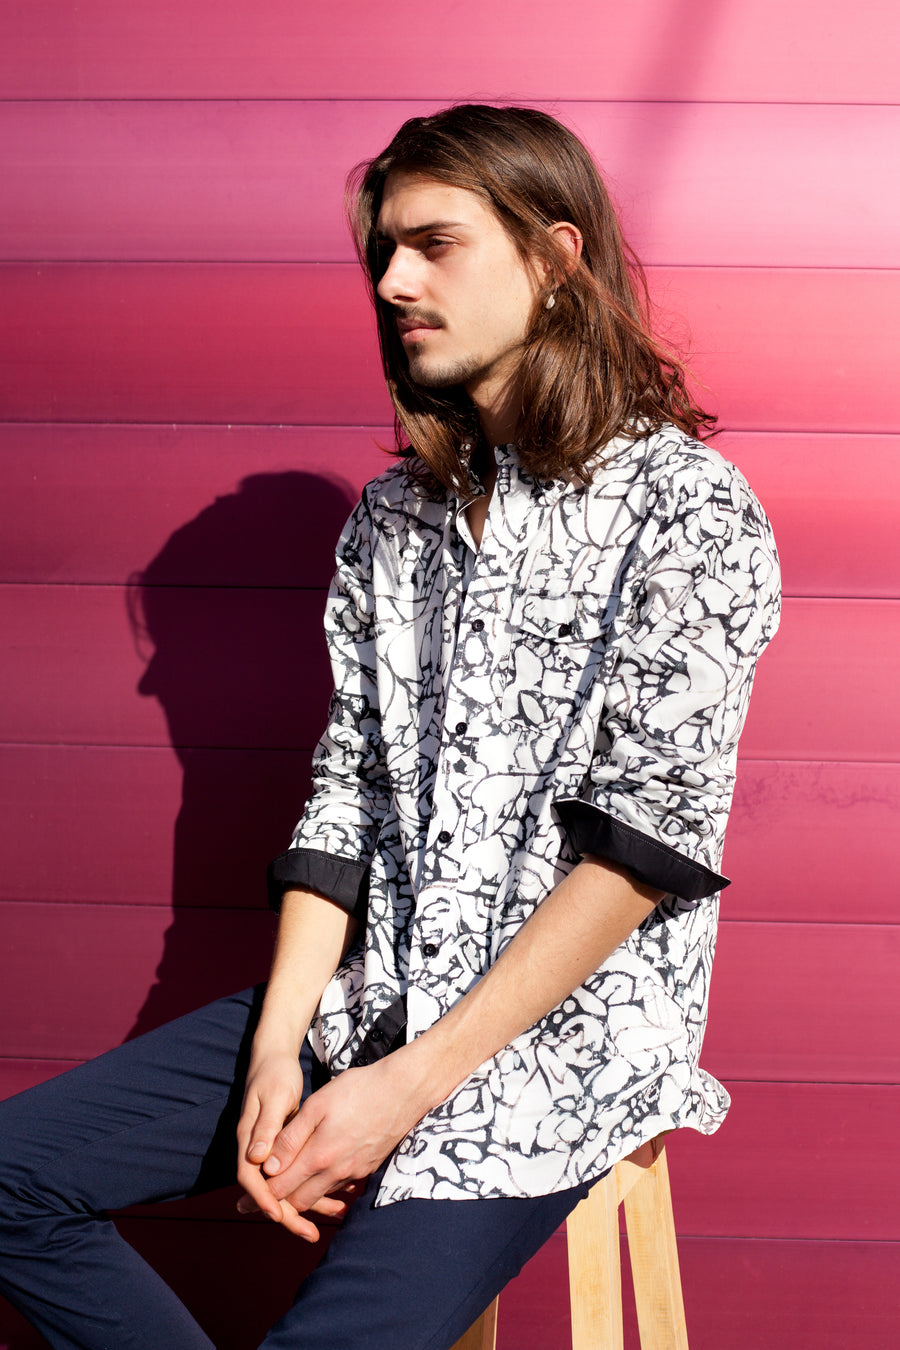 HEW X AUGUSTUS RELAXED OXFORD SHIRT IN BLACK & WHITE PRINT (CANVAS)